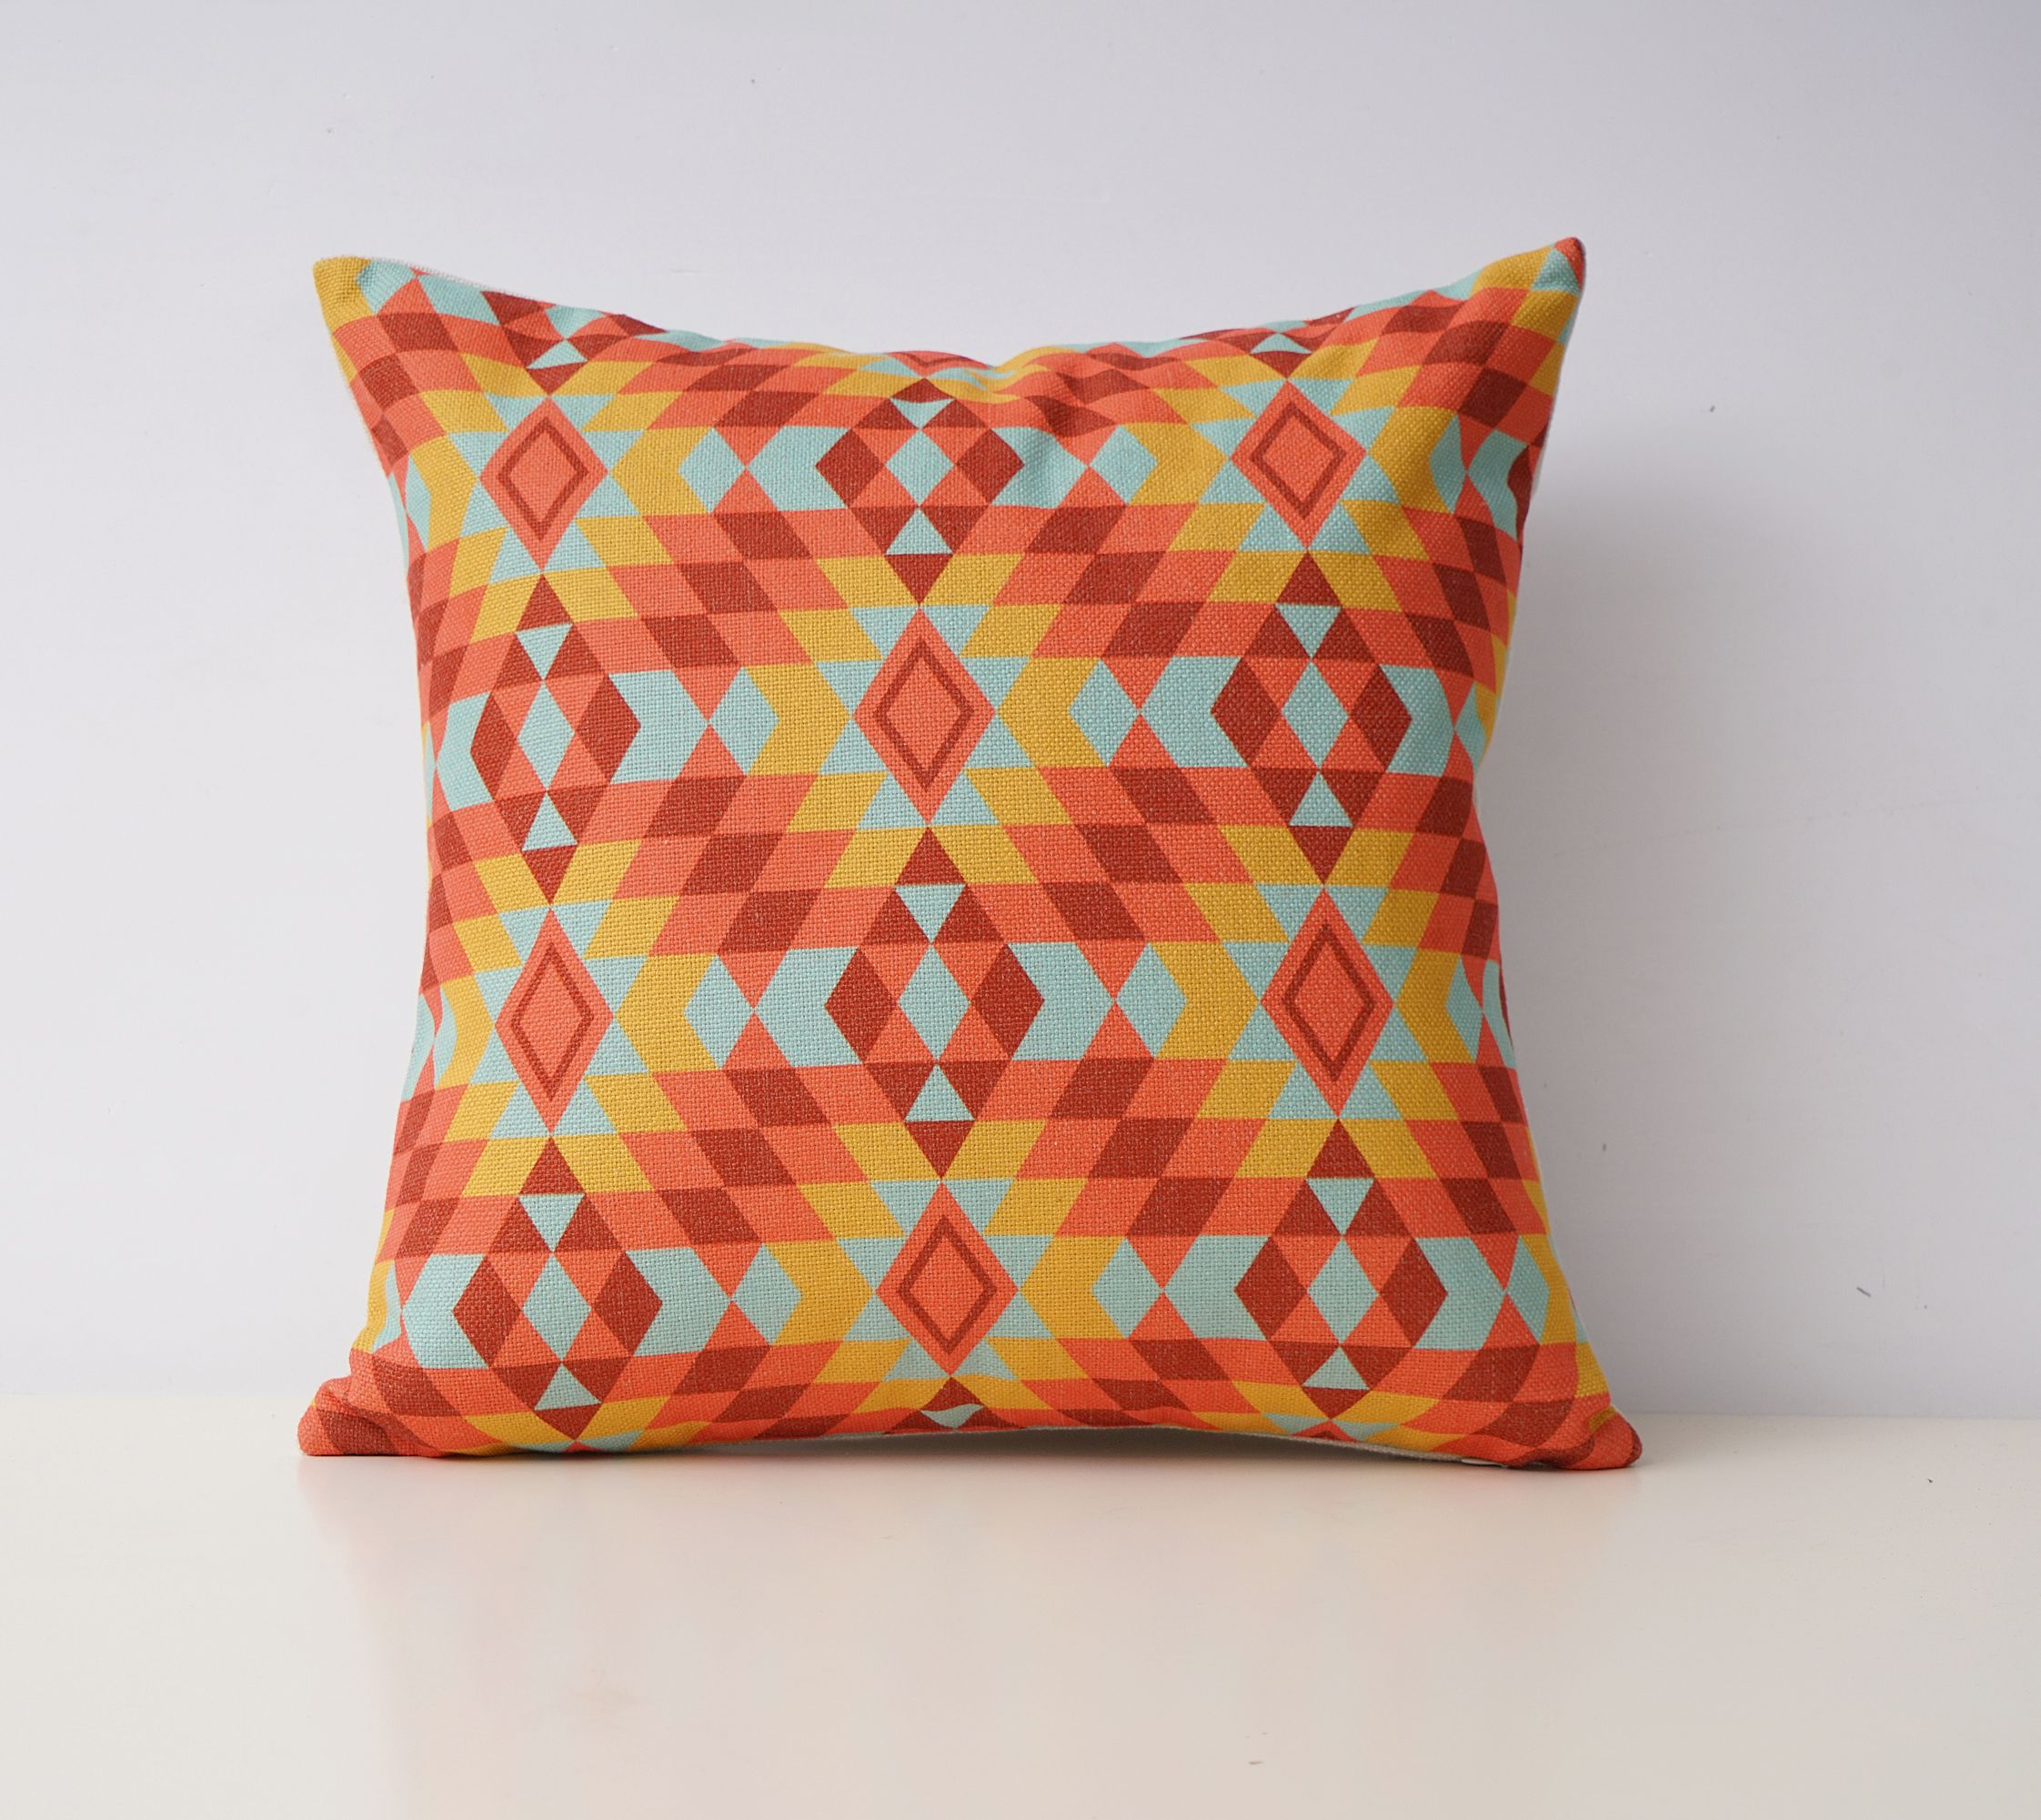 Pin by Swan on aztec throw pillow covers | Pinterest | Aztec